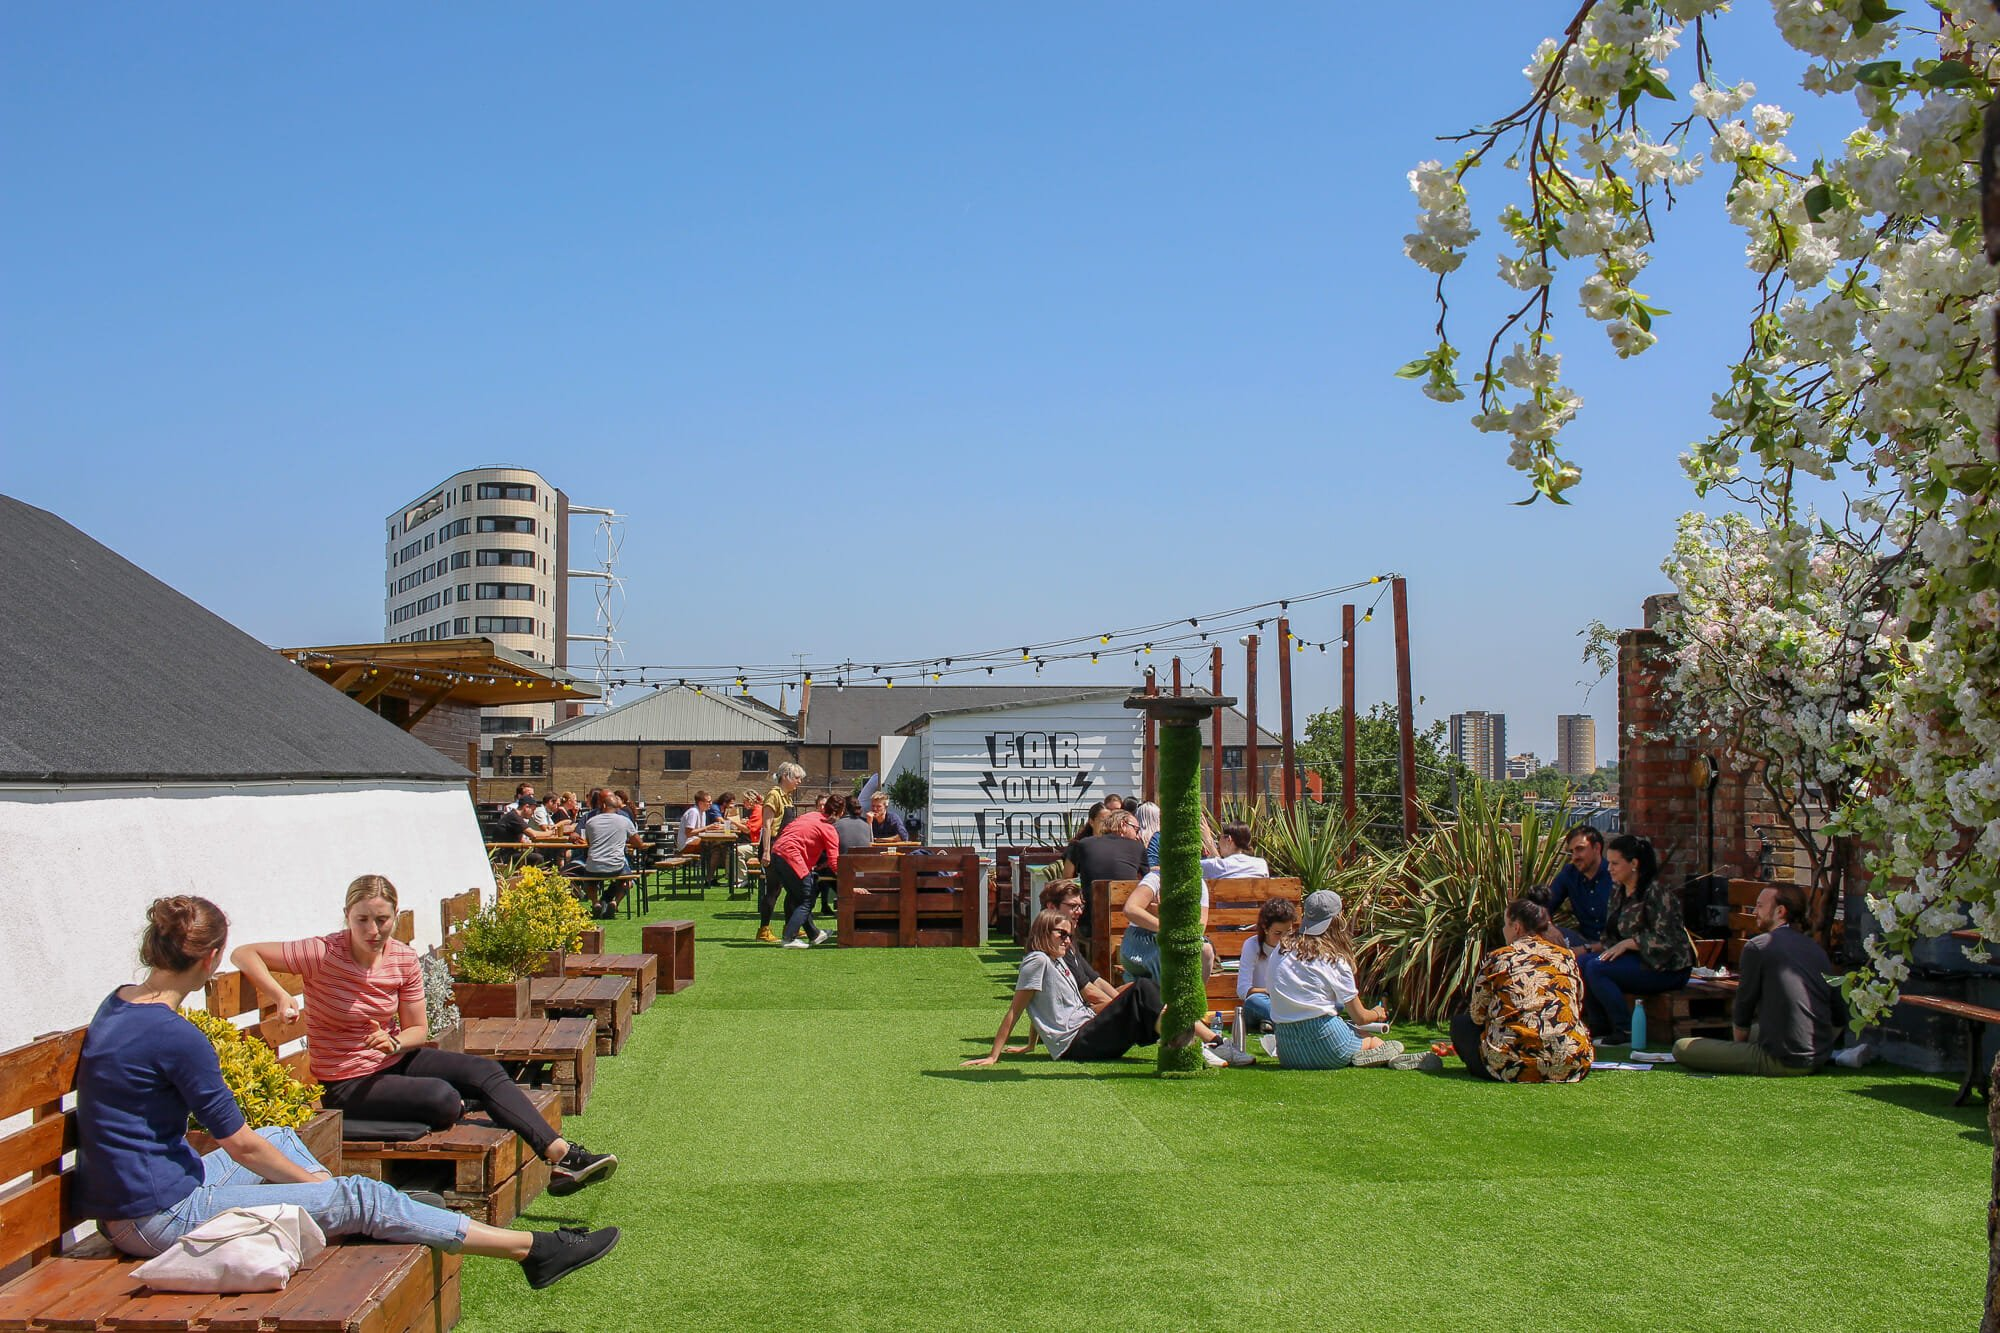 dalston roof park casual rooftop